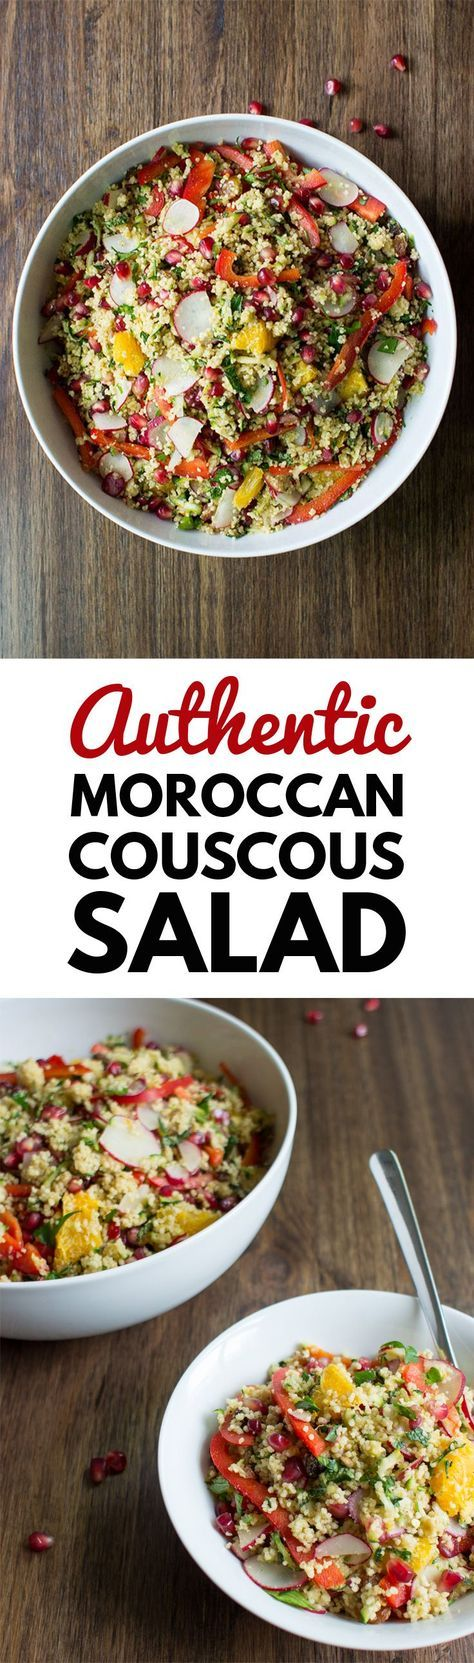 Authentic Moroccan Couscous salad. An exotic blend of heady spices, fresh fruits, tangy veggies and fluffy couscous   hurrythefoodup.com